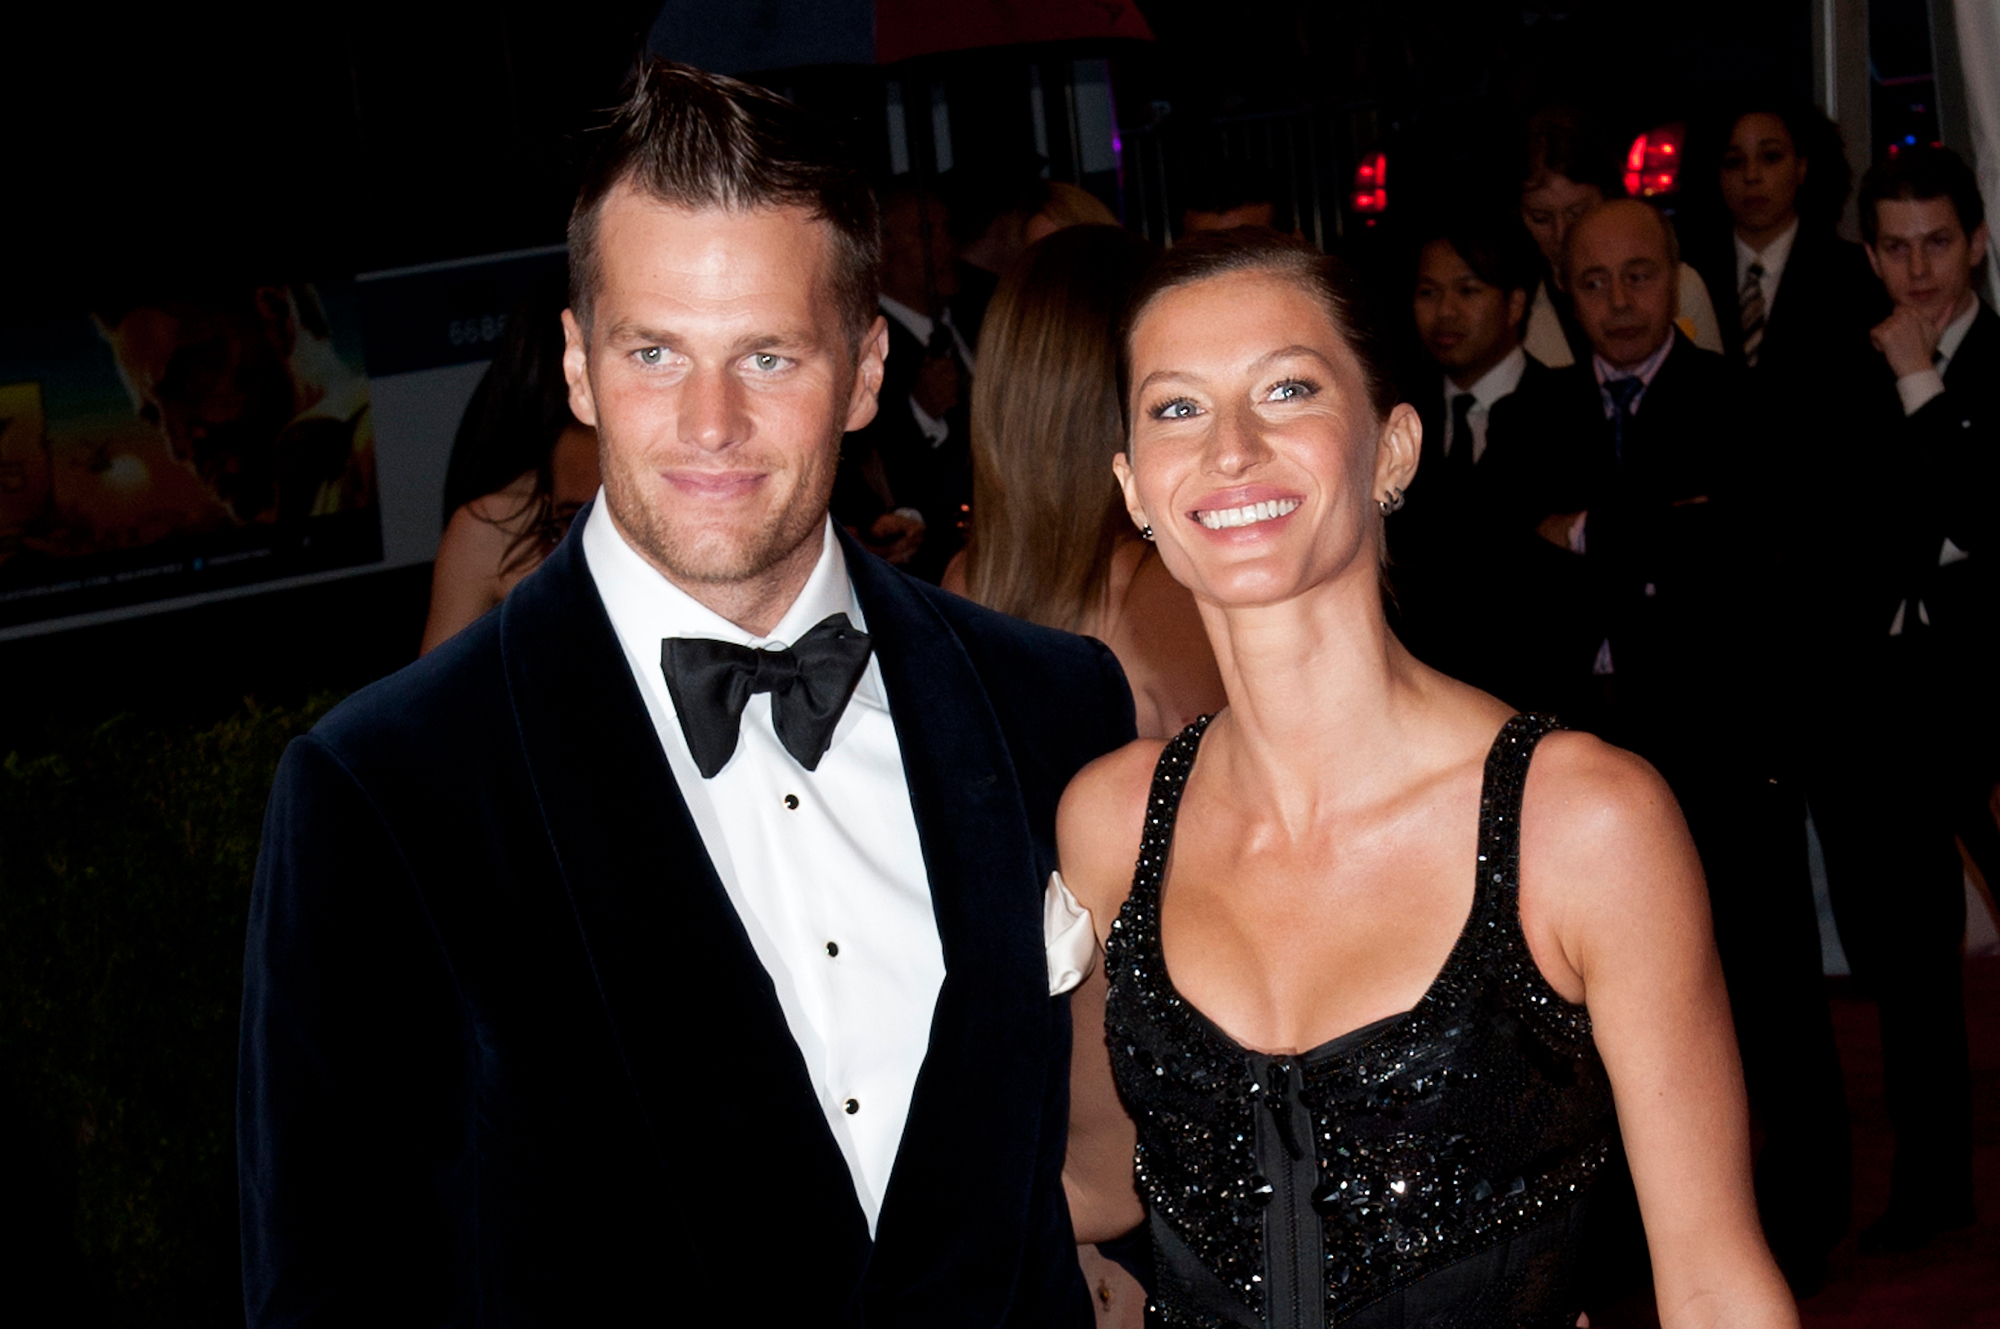 Tom Brady and Gisele Bundchen: A Timeline of Their Relationship - Brady and Bündchen welcomed their first child together, a son named Benjamin, in December 2009.